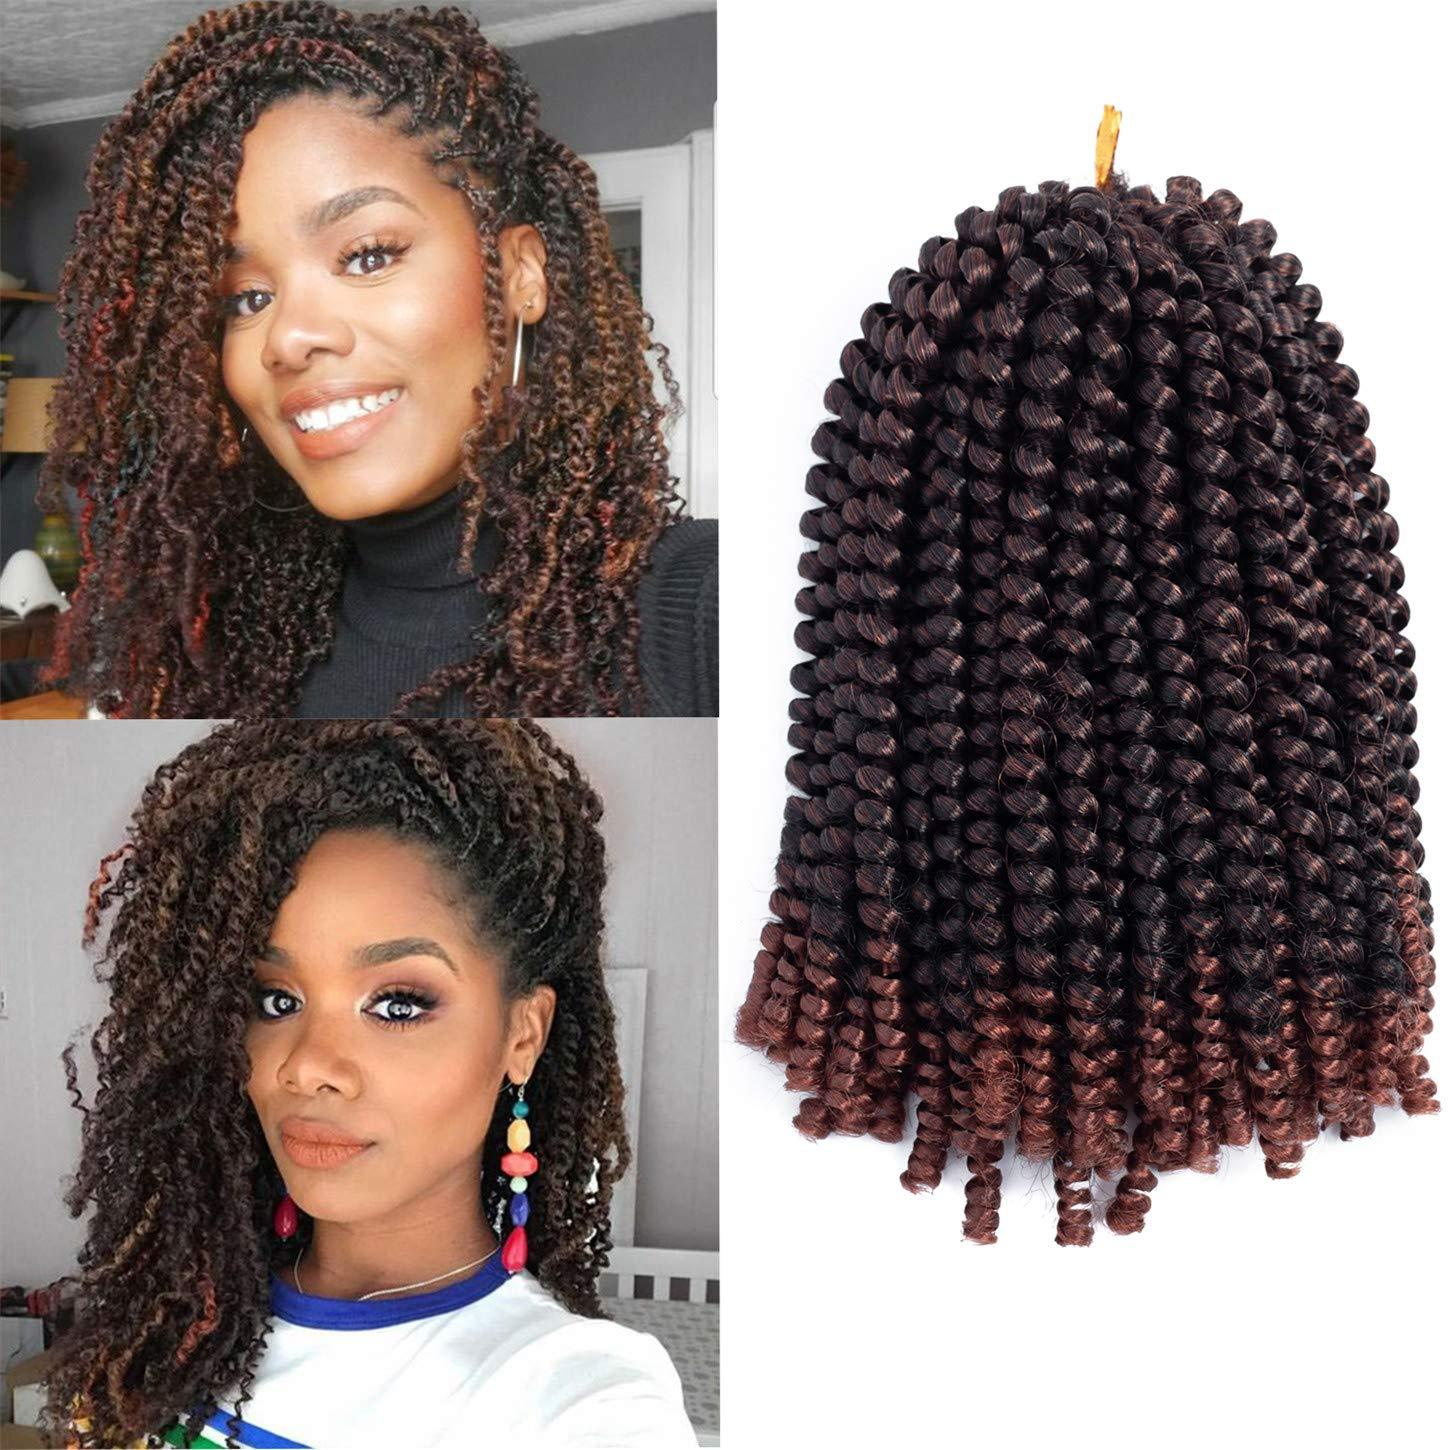 Synthetic Spring Twist braiding hair 3pack Crochet Braids Hair 8 inch  Synthetic Jamaican Bounce Twist Ombre Braiding Hair Extensions